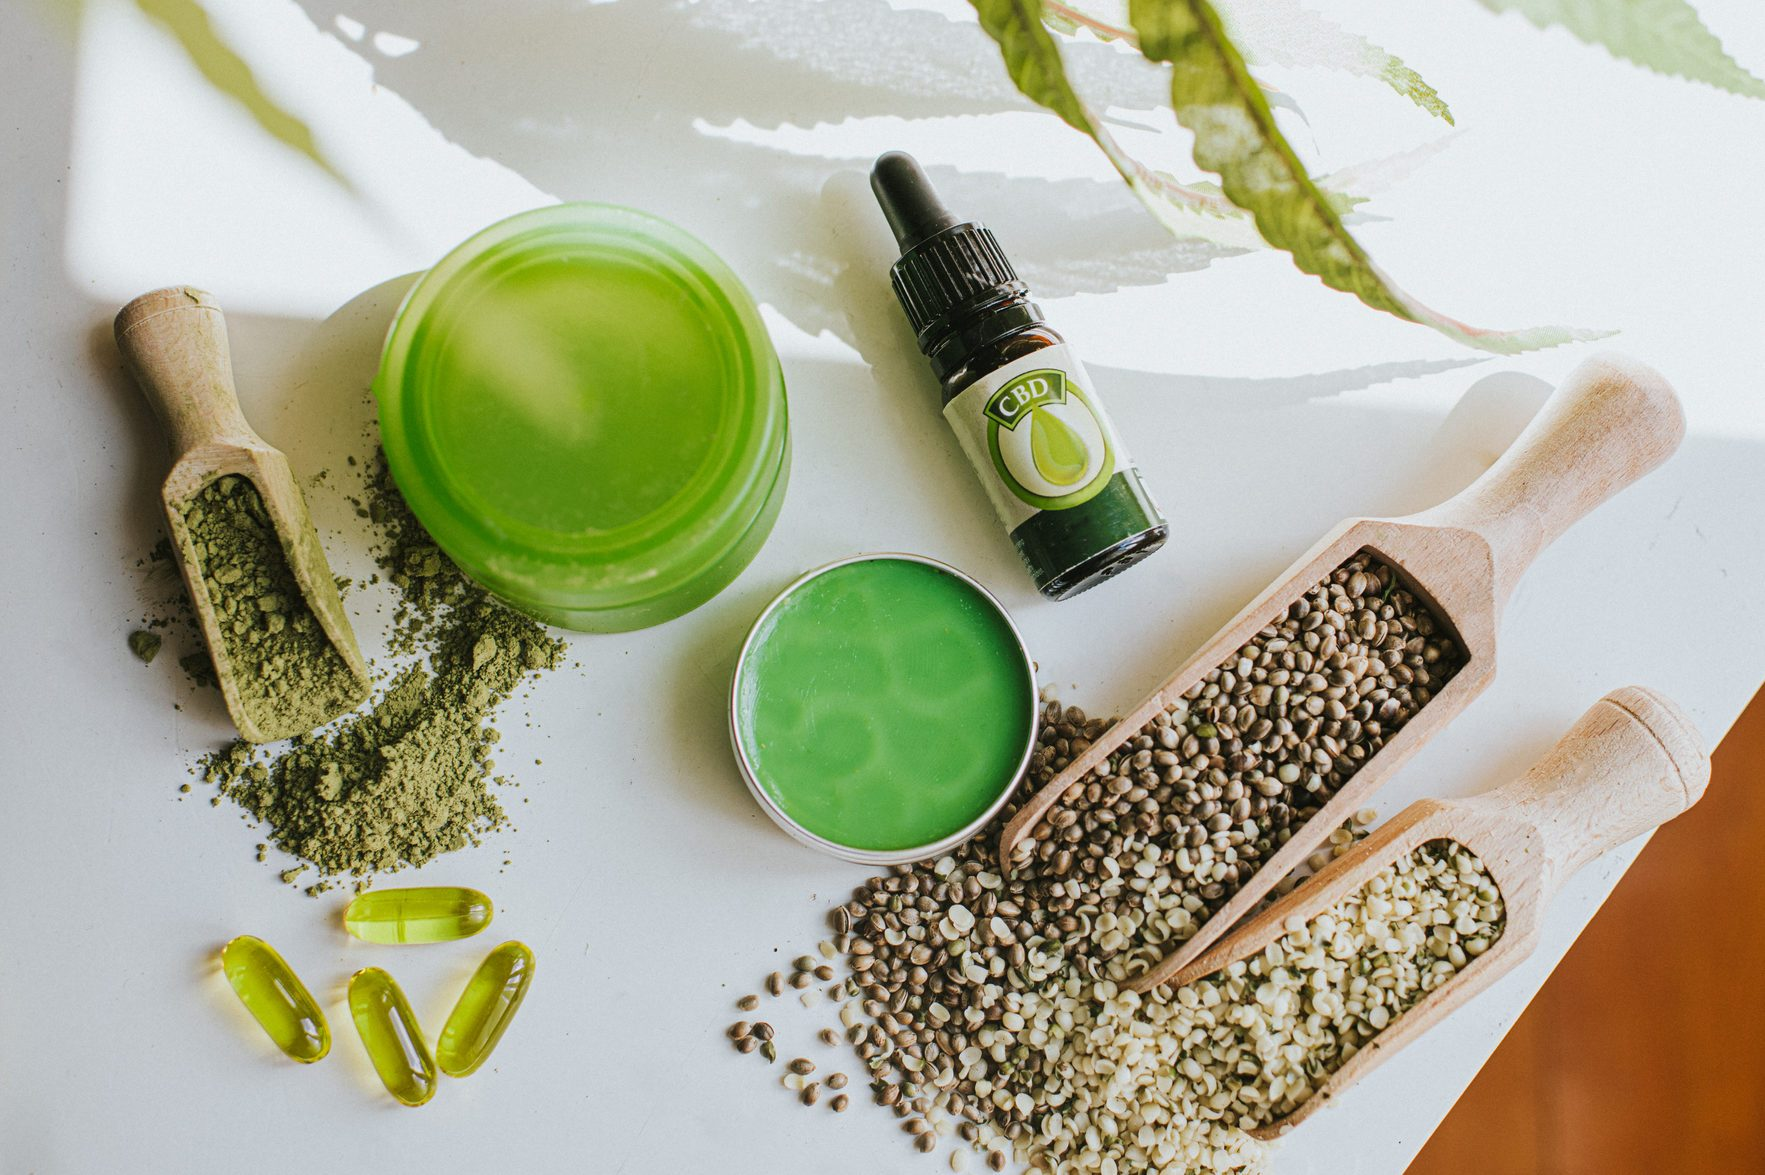 Still-Life Selection of CBD products, conveying vast possibilities of cannabis as an Ingredient in an Alternative therapies, Lifestyle and treatments.